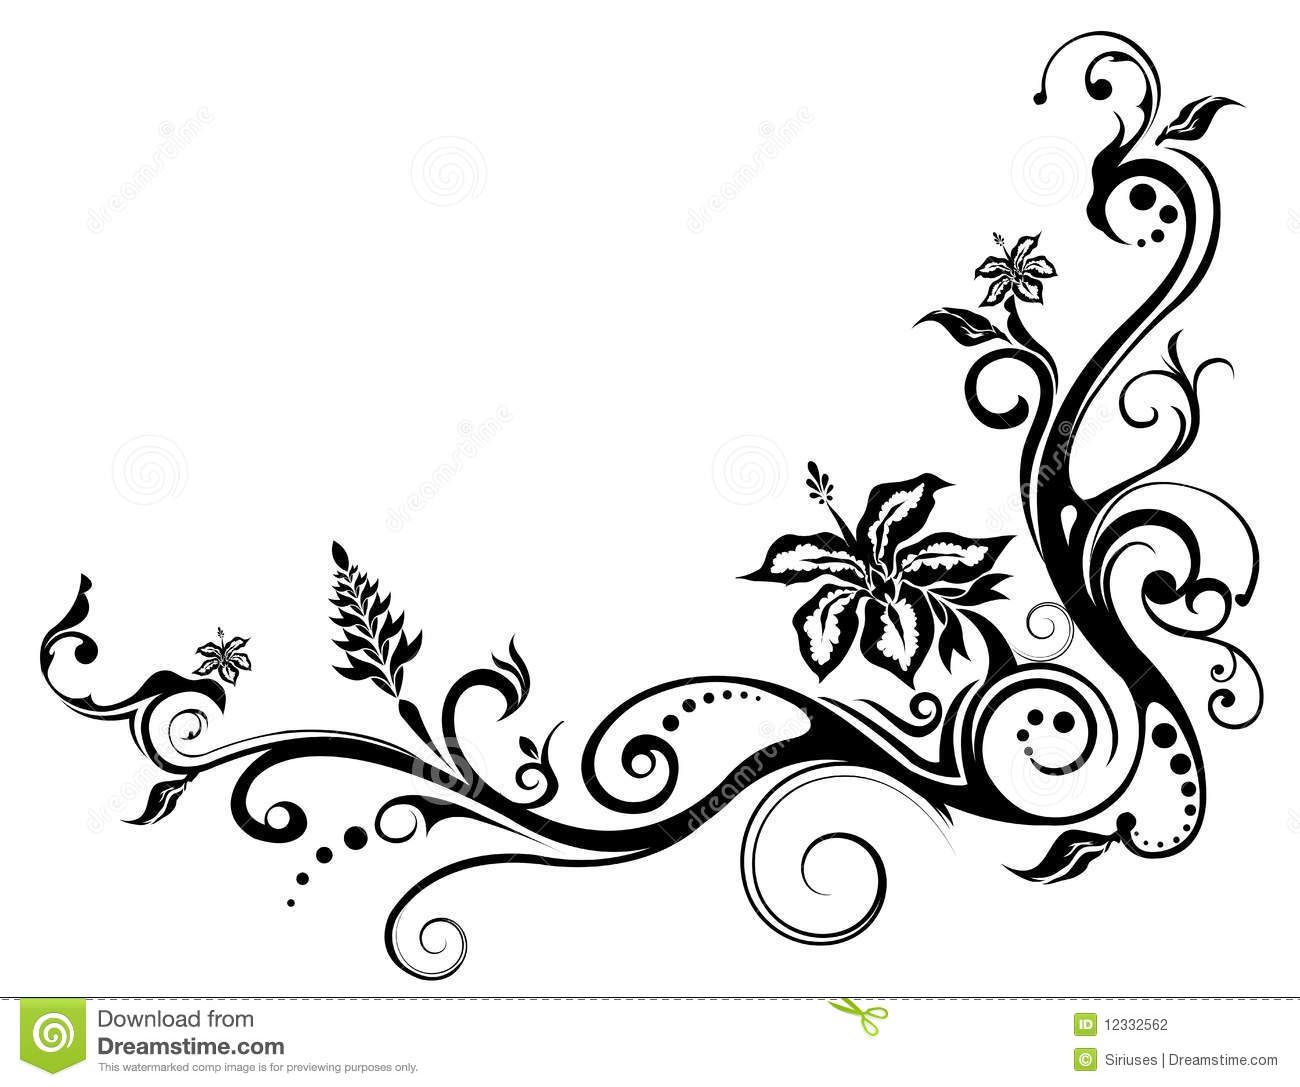 Flower Vine Line Drawing : Viewing gallery for floral vine pattern tattoo